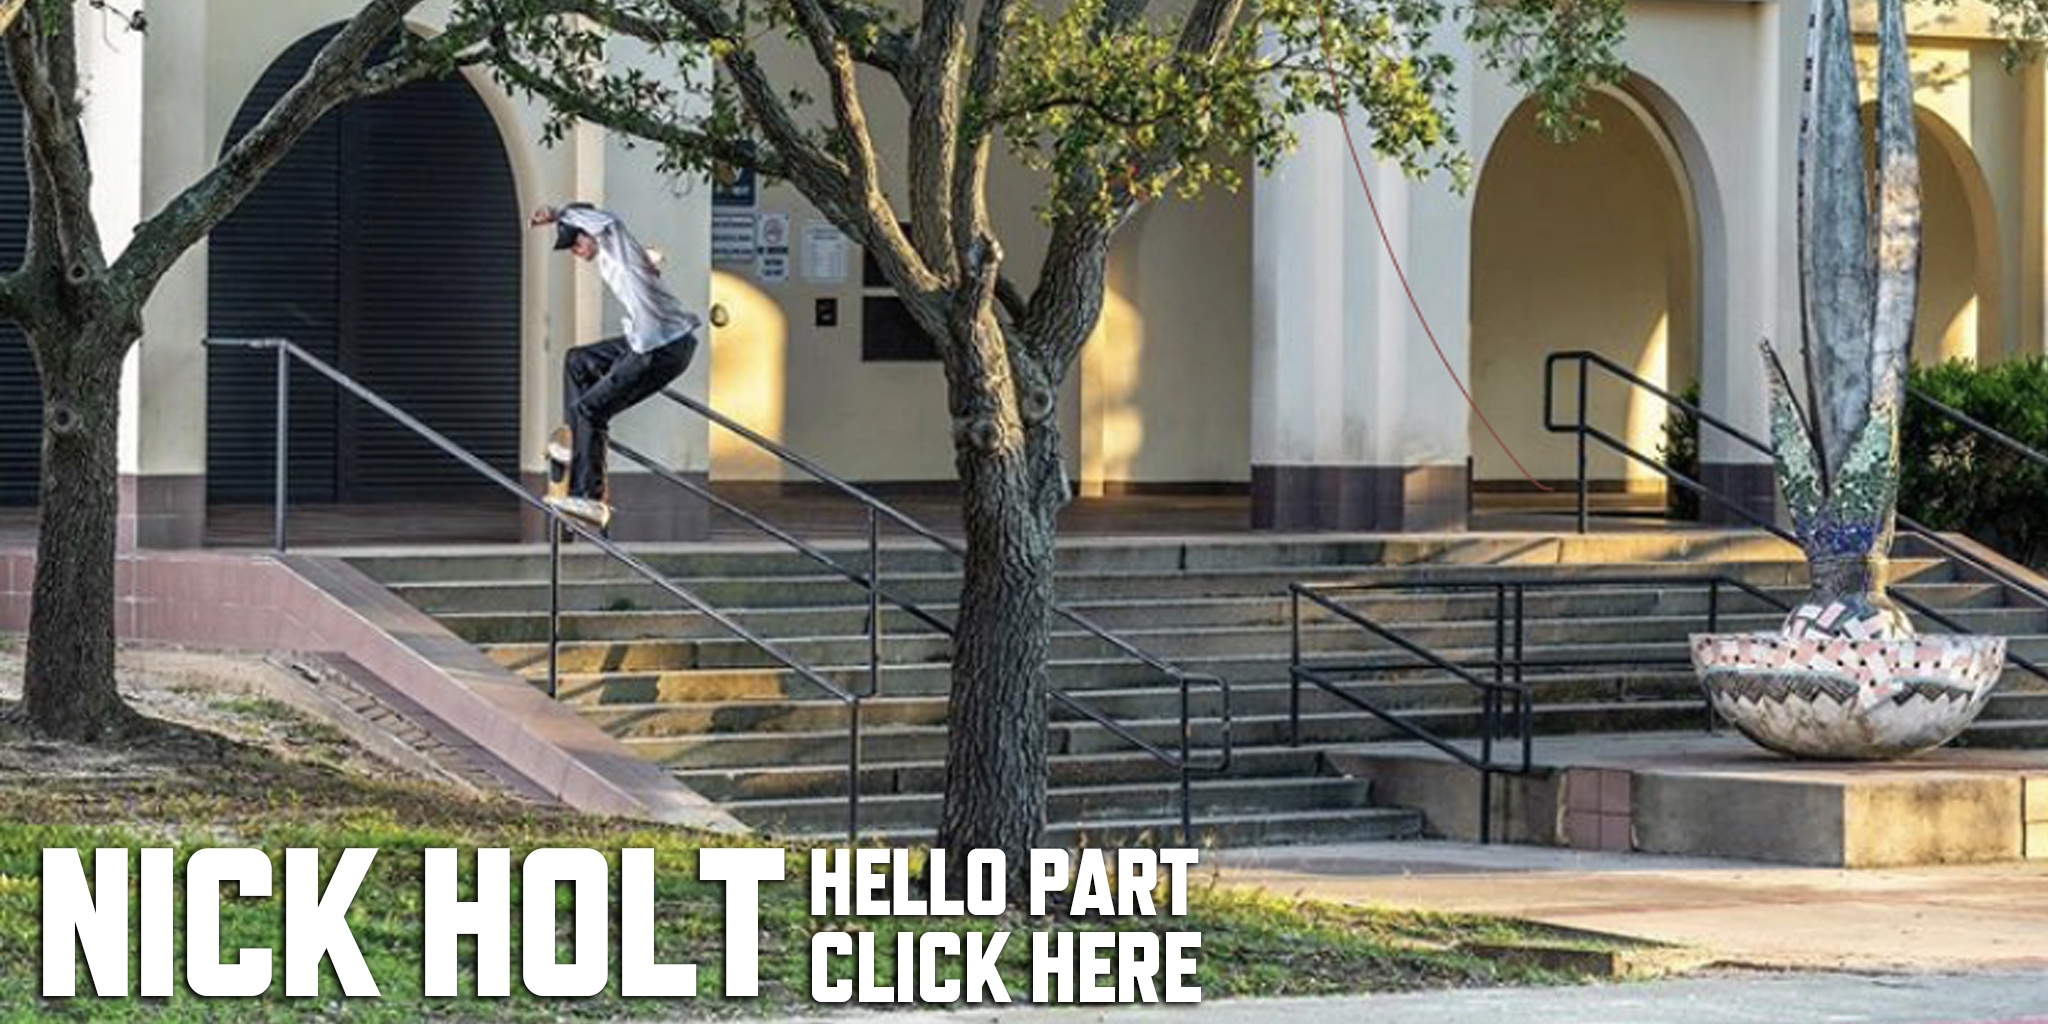 NICK HOLT HELLO PART